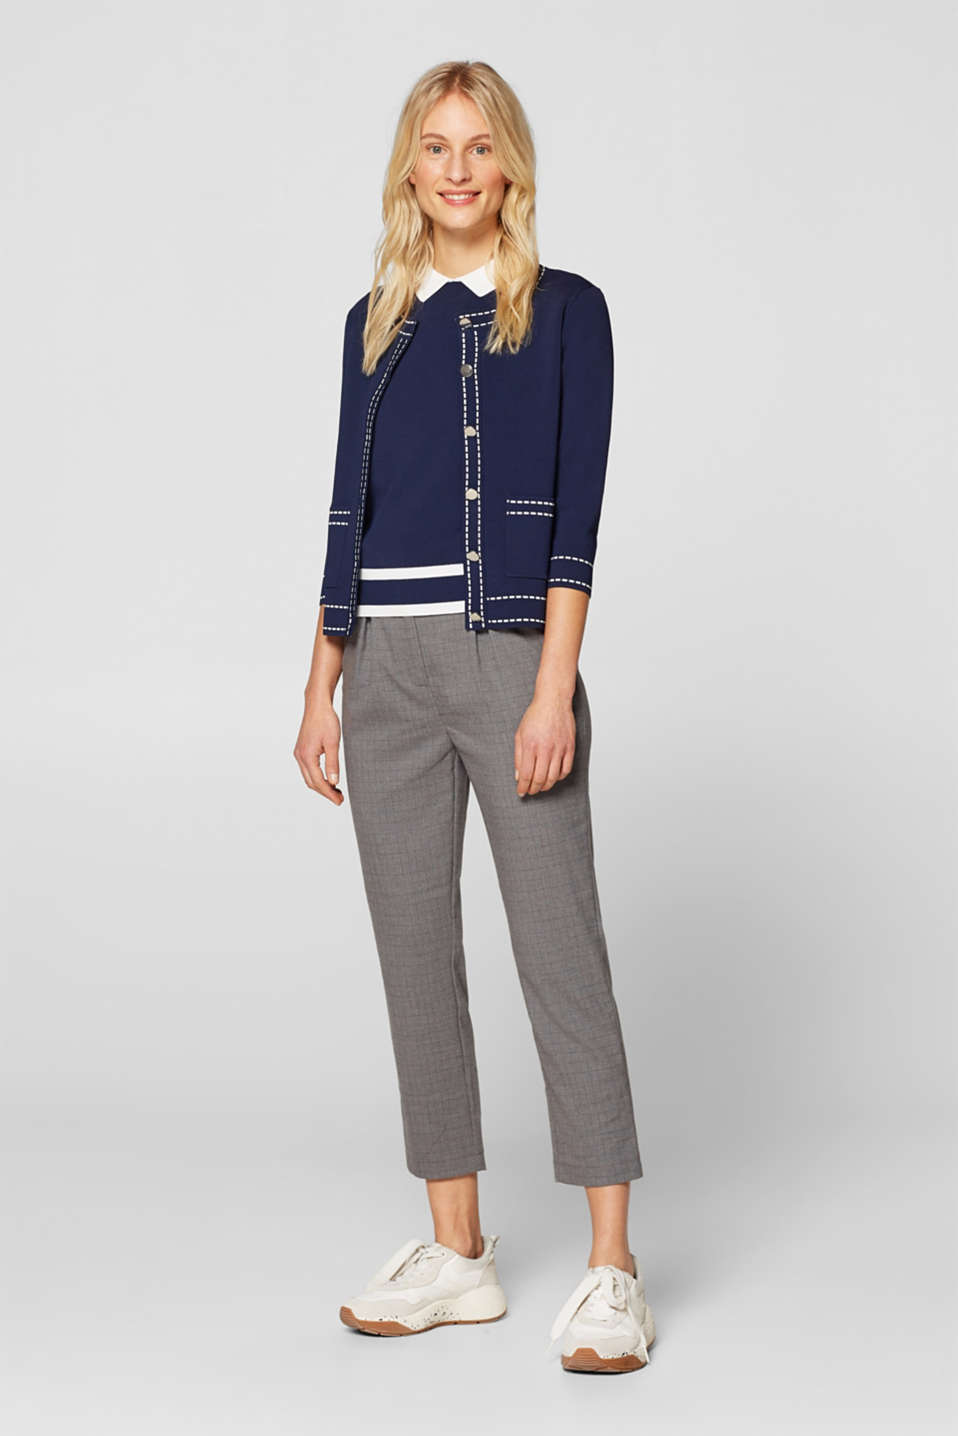 Cardigan with contrasting details, NAVY, detail image number 1